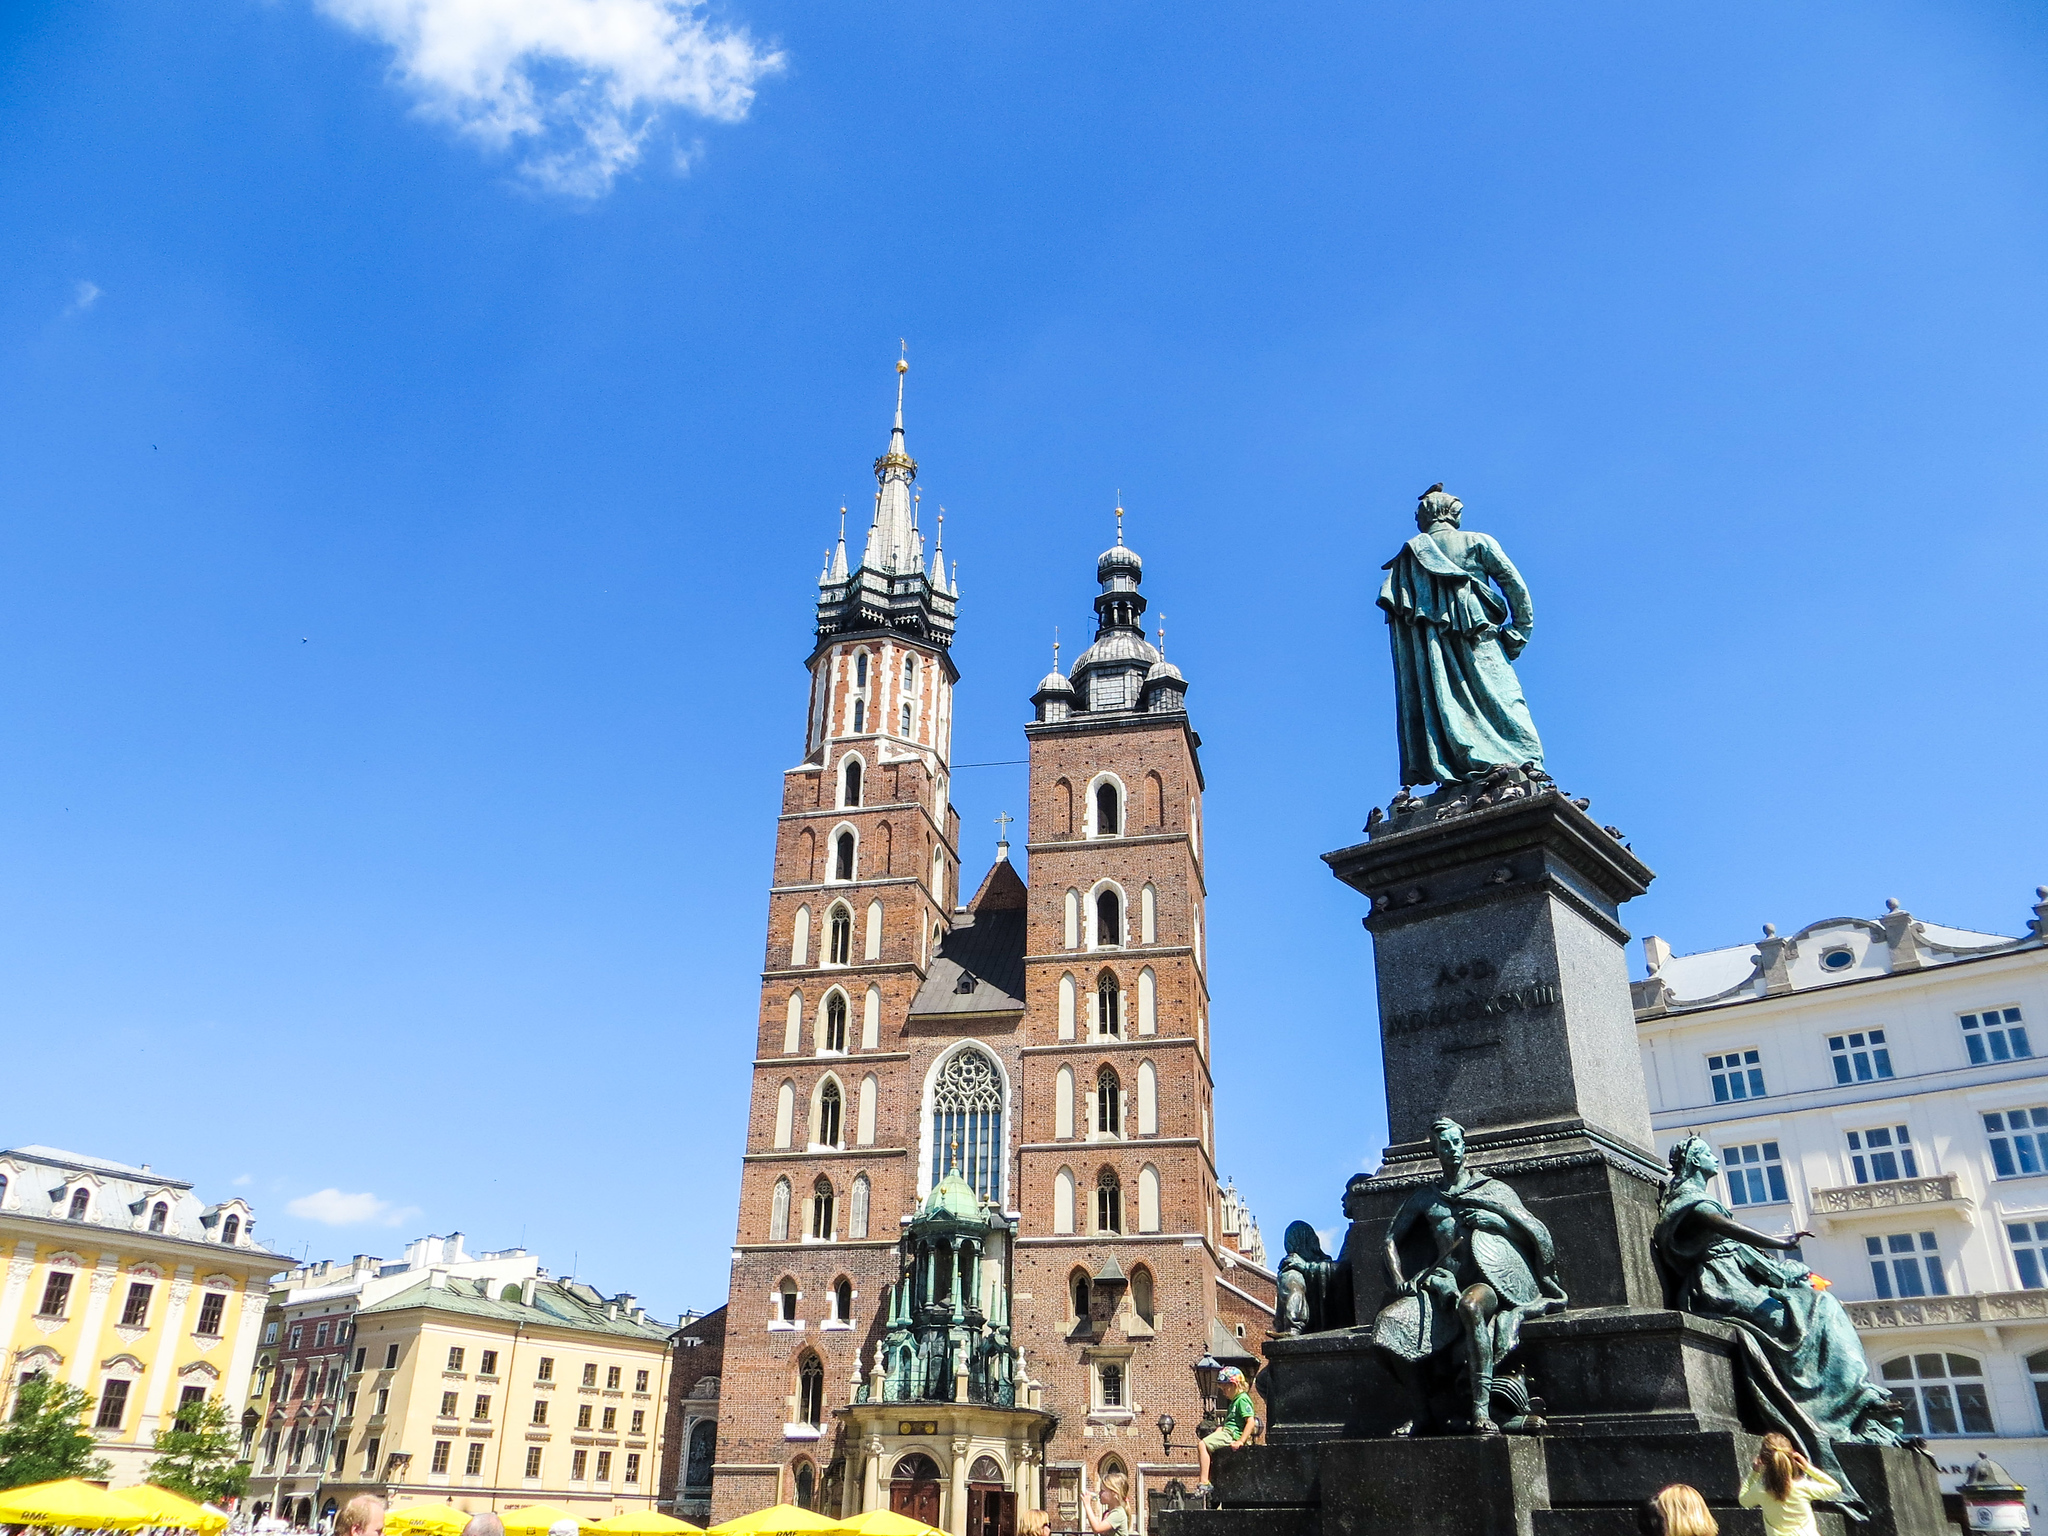 going to europe for the first time? perhaps go to krakow